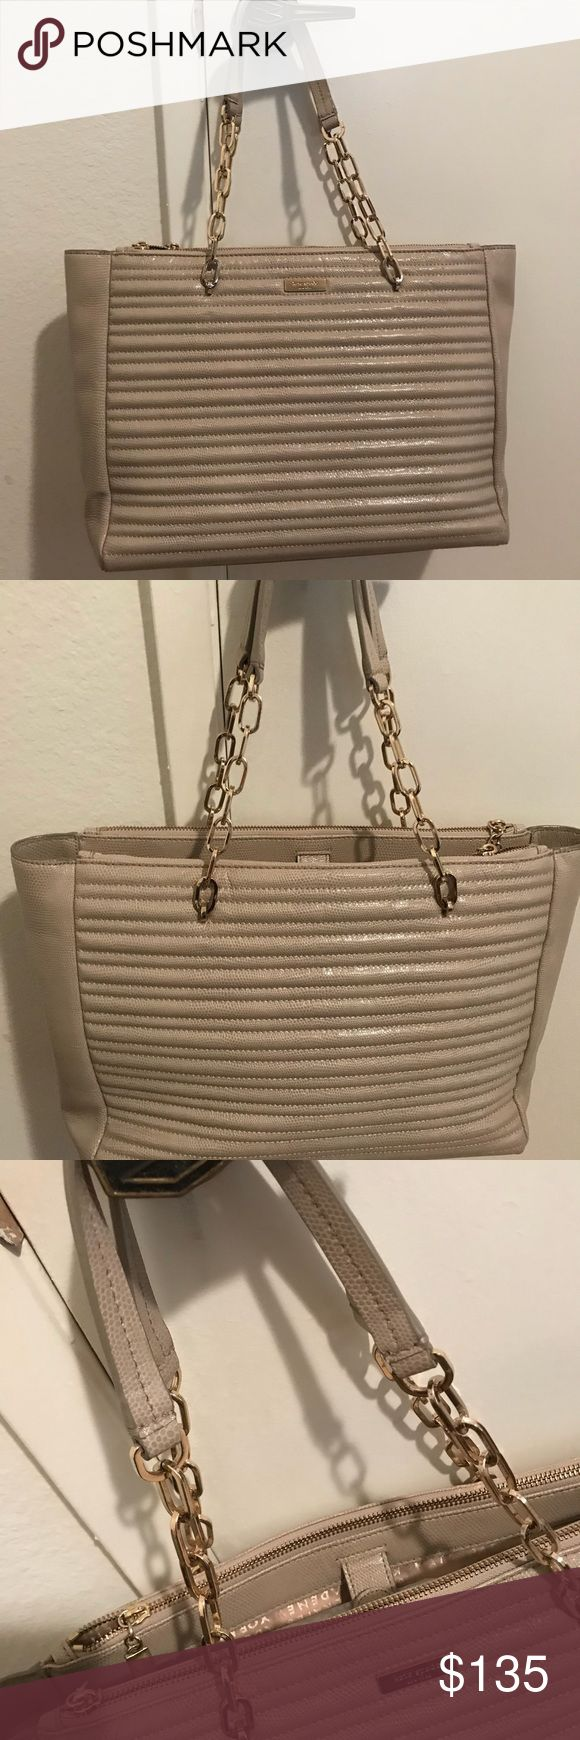 """KATE SPADE LEATHER NEW W/OUT TAGS TOTE BAG KATE SPADE BEIGE TOTE BAG WITH DOUBLE STRAND CHAIN AND LEATHER HANDLE  COW LEATHER EXTERIOR  POLYESTER LINING GOLD-TONE HARDWARE  HAS FOUR BOTTOM PROTECTORS  THE LEATHER IS SEMI PATENT  LOTS OF COMPARTMENTS W/ZIPPER AND W/O ZIPPERED AND MAGNETIC CLOSURE  H 11"""" L 13.5 D 4.5-5.5  HANDLE DROP IS 22.5 APPROXIMATE MEASUREMENTS  100% AUTHENTIC kate spade Bags Totes"""